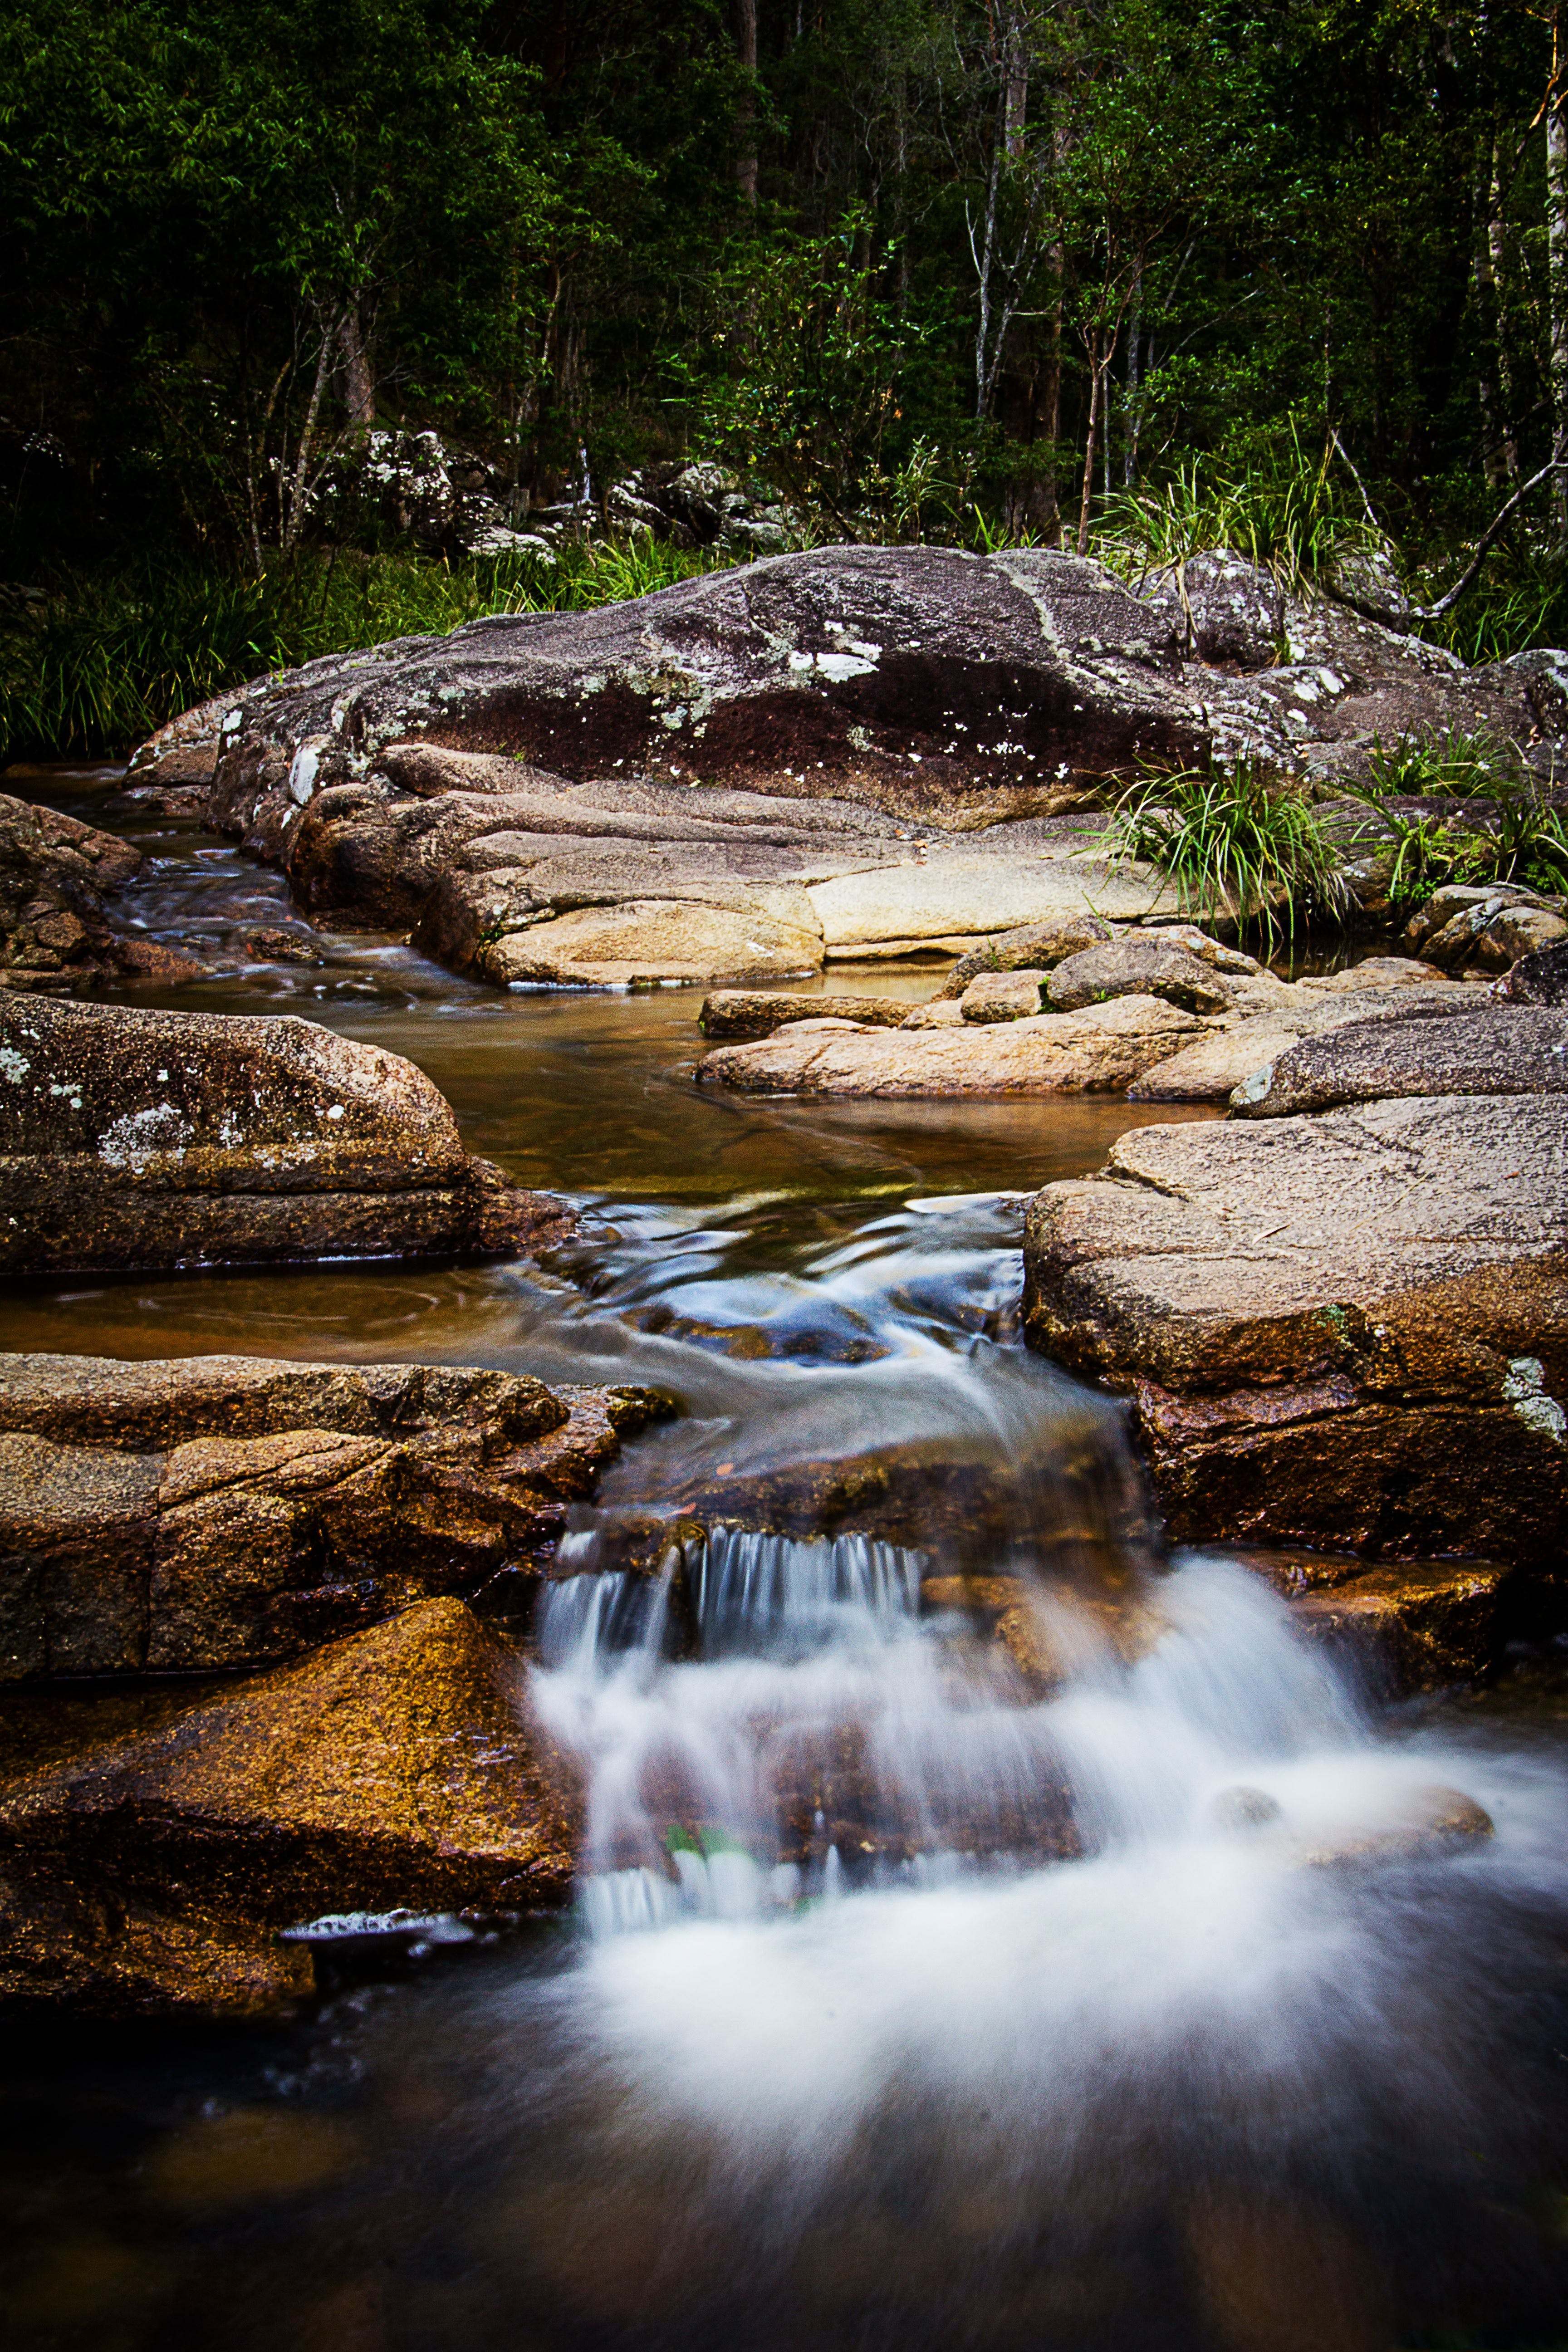 Mothar Mountain Rockpools - Accommodation Coffs Harbour